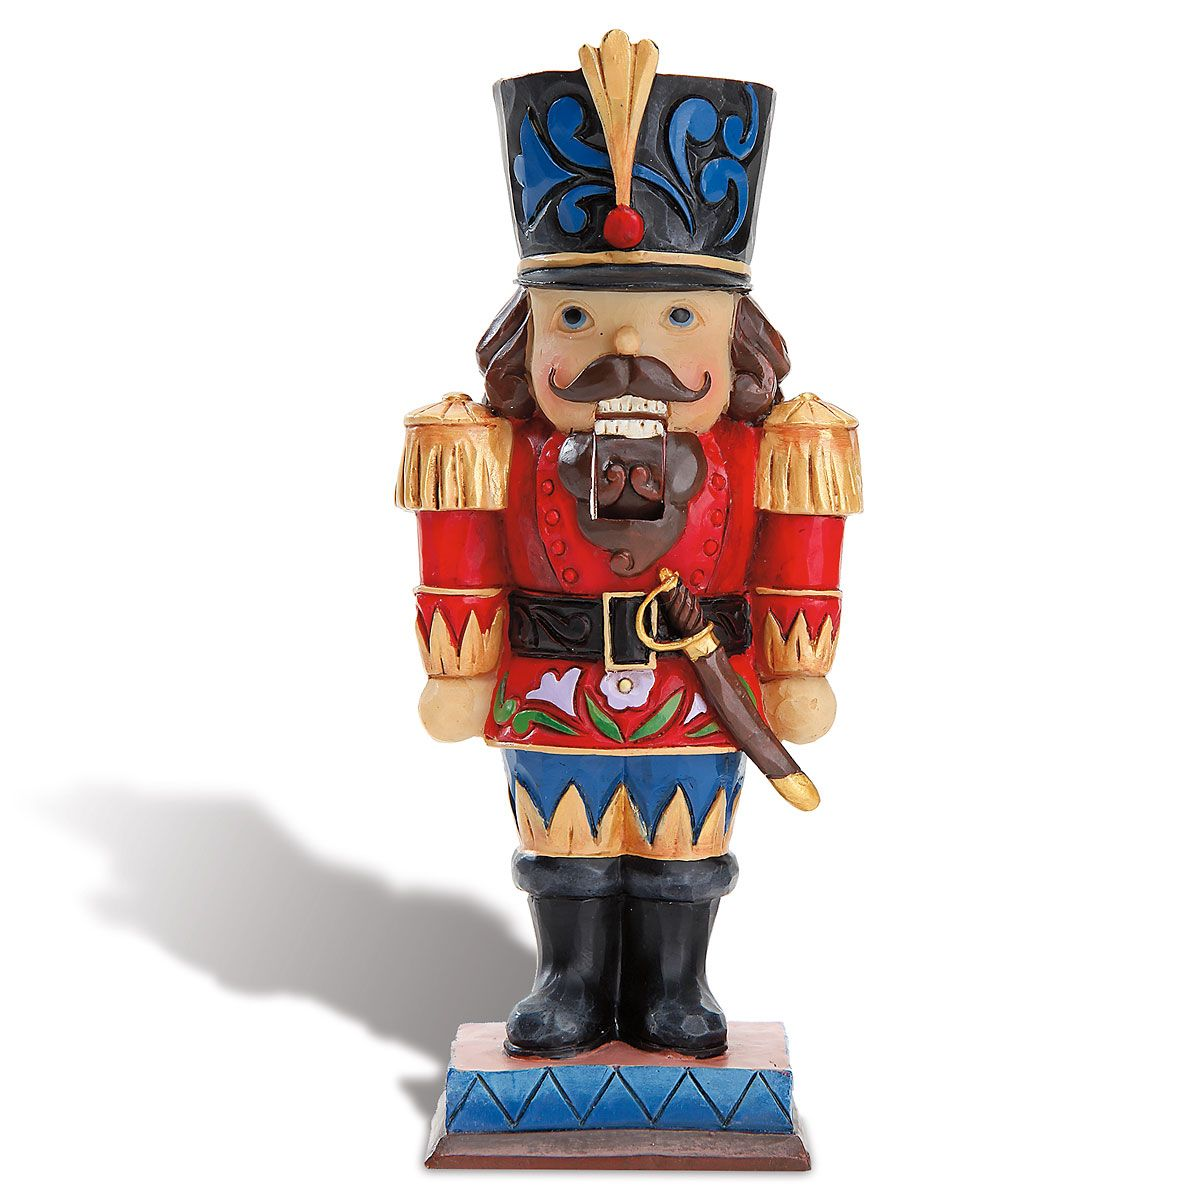 Mini Nutcracker by Jim Shore